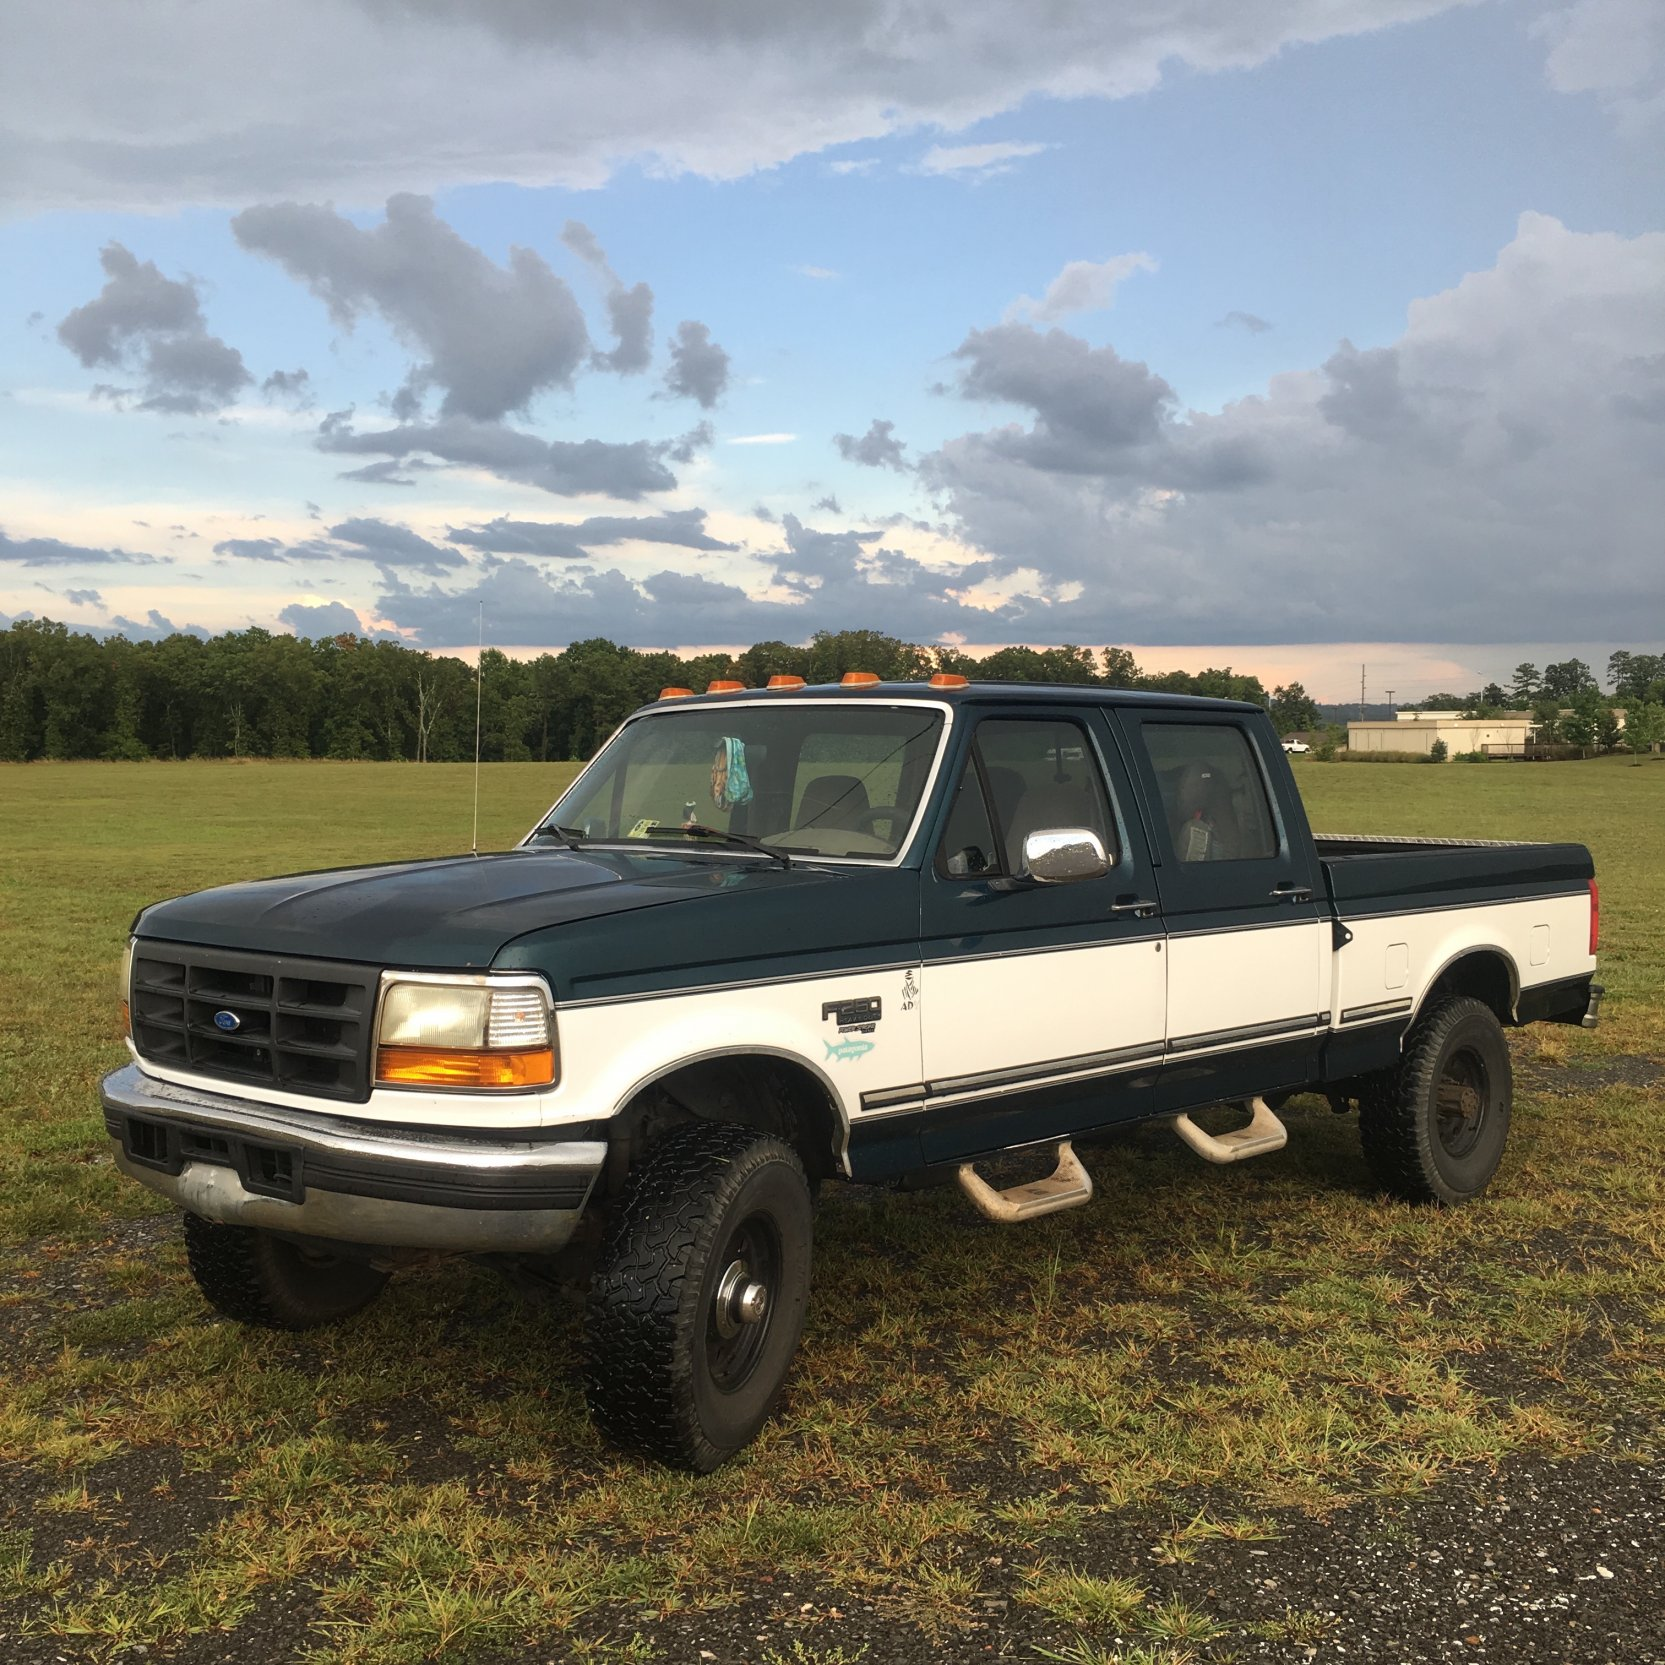 1997 Ford Expedition For Sale: 1997 Ford F250 Crew Cab Short Bed 4x4 W/ 7.3